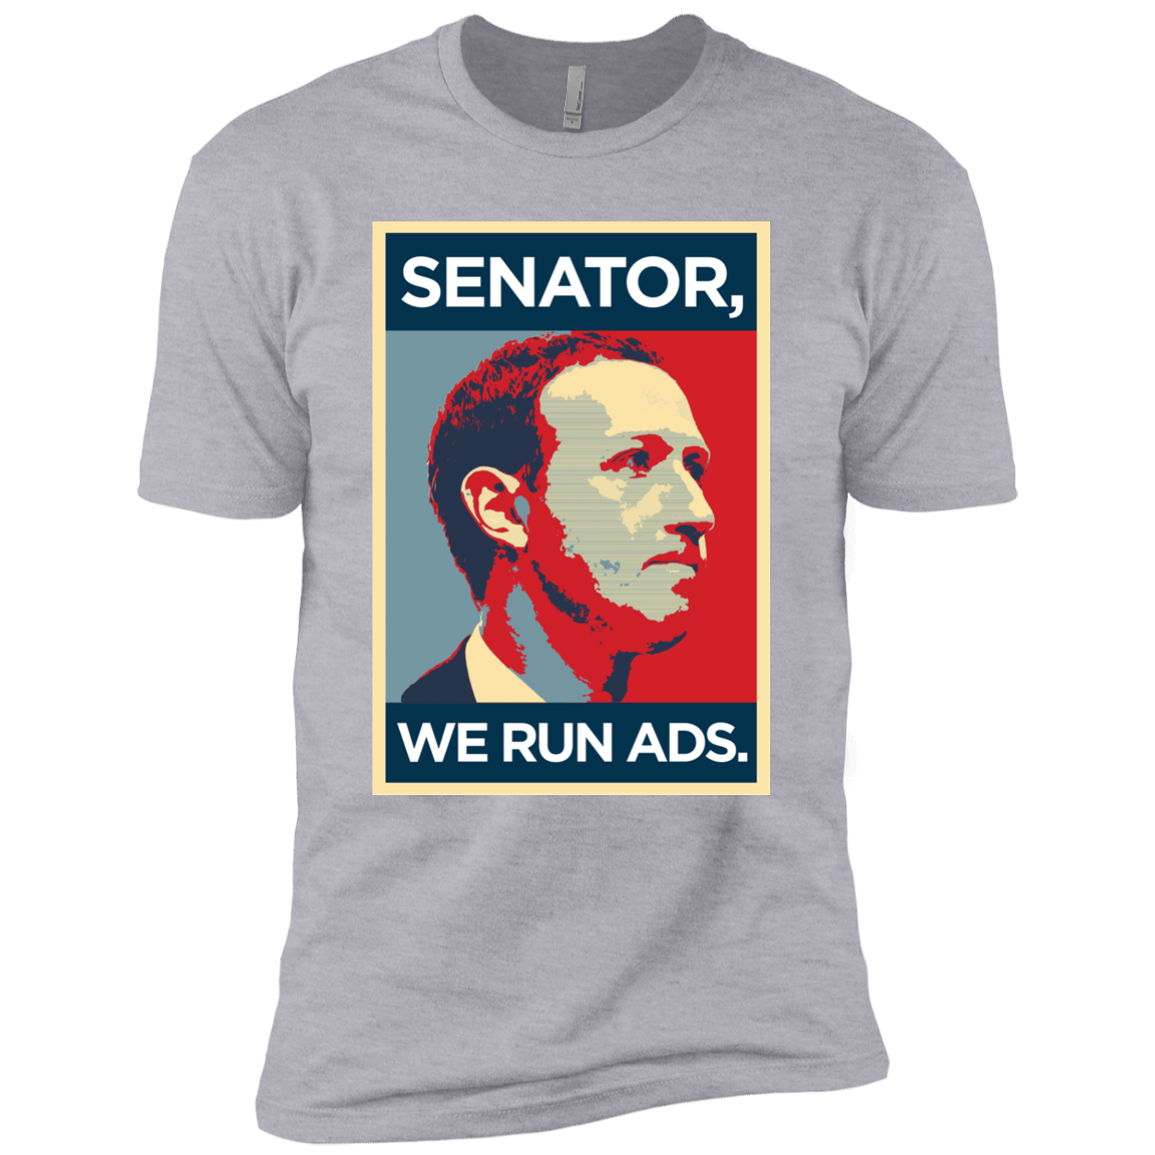 Senator, We Run Ads Short Sleeve T-Shirt | Entrepreneur Apparel & Gear | Entrepreneur Empire